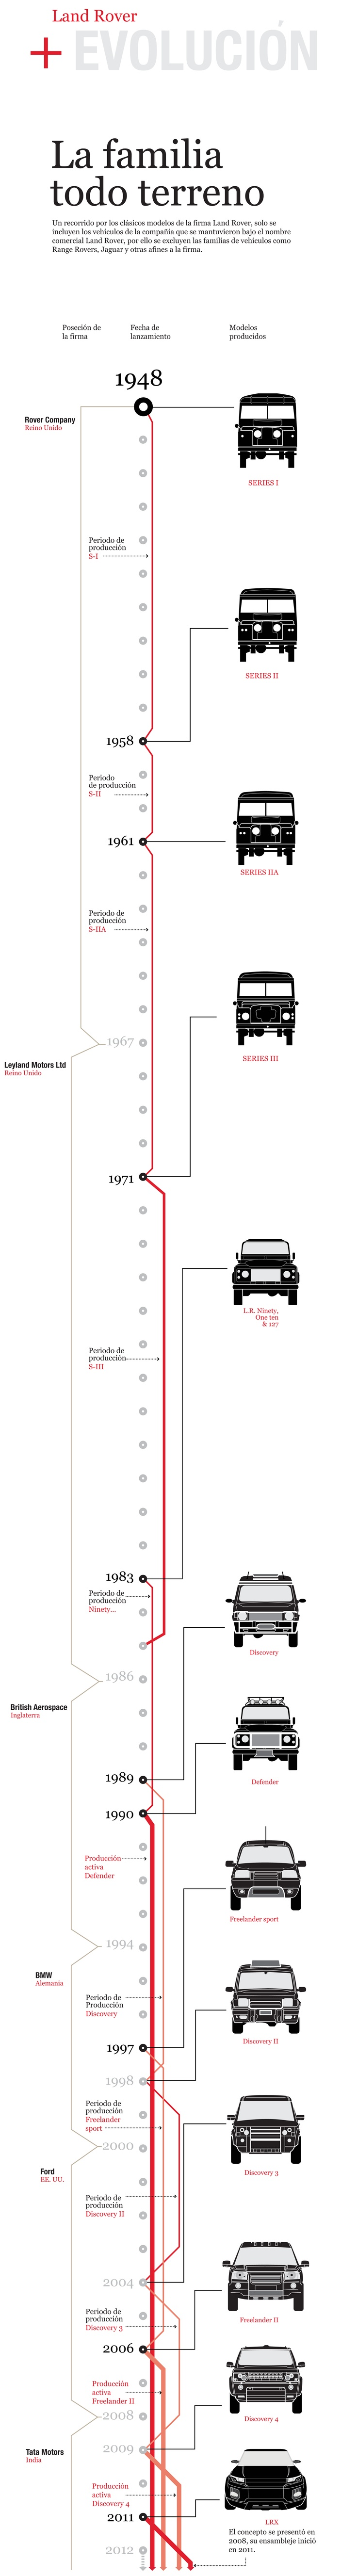 LandRover Time Line 1948-2011. Strangely misses out Range Rovers but includes the Evoque concept car.